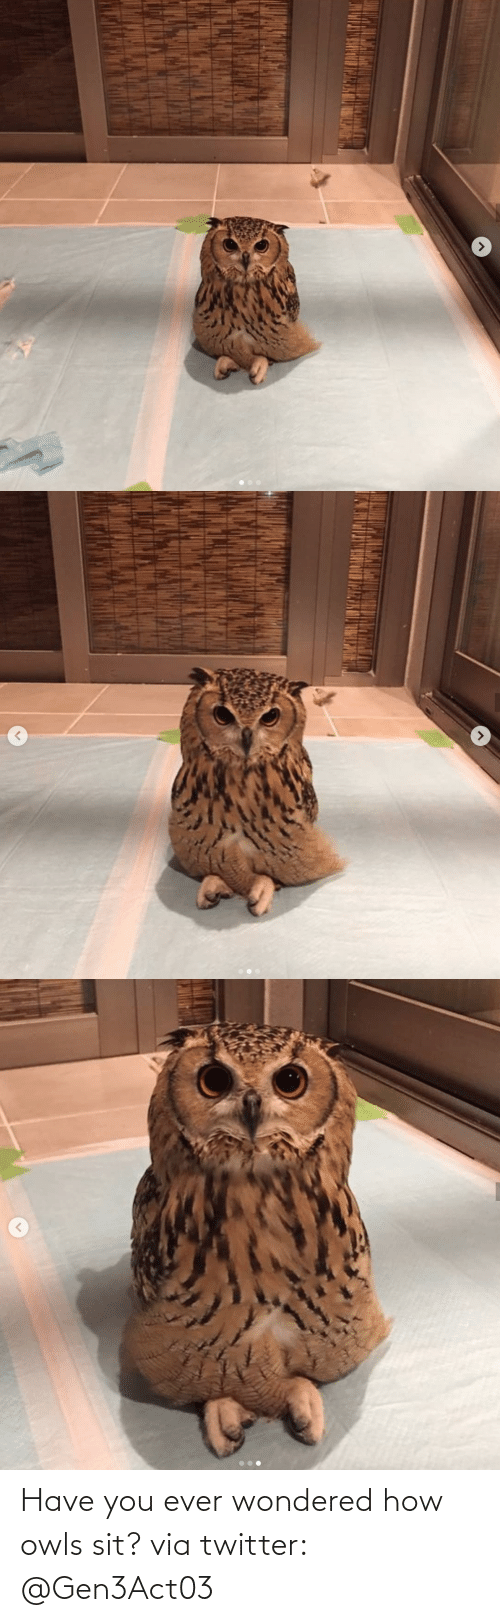 Sit: Have you ever wondered how owls sit? via twitter: @Gen3Act03